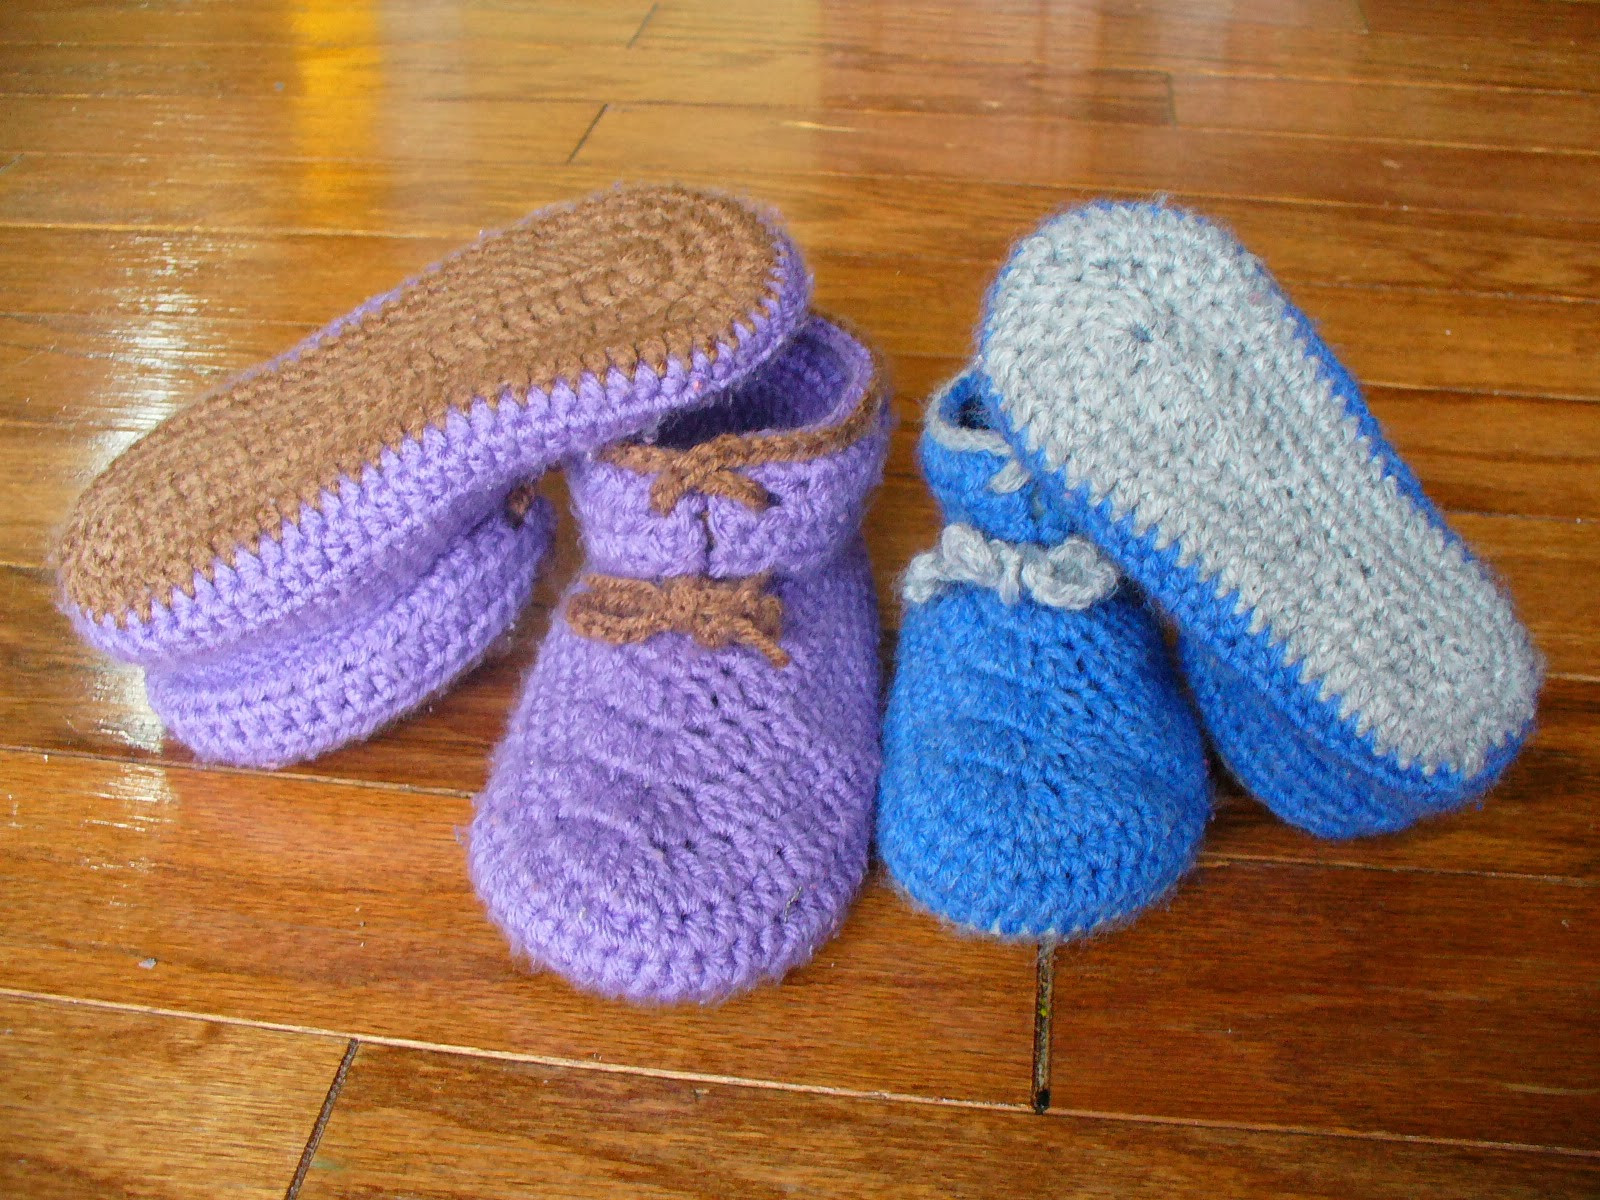 Crochet Stitches Dc3tog : Sanity by Stitches: Toddler Double Sole Moccasins - Pattern